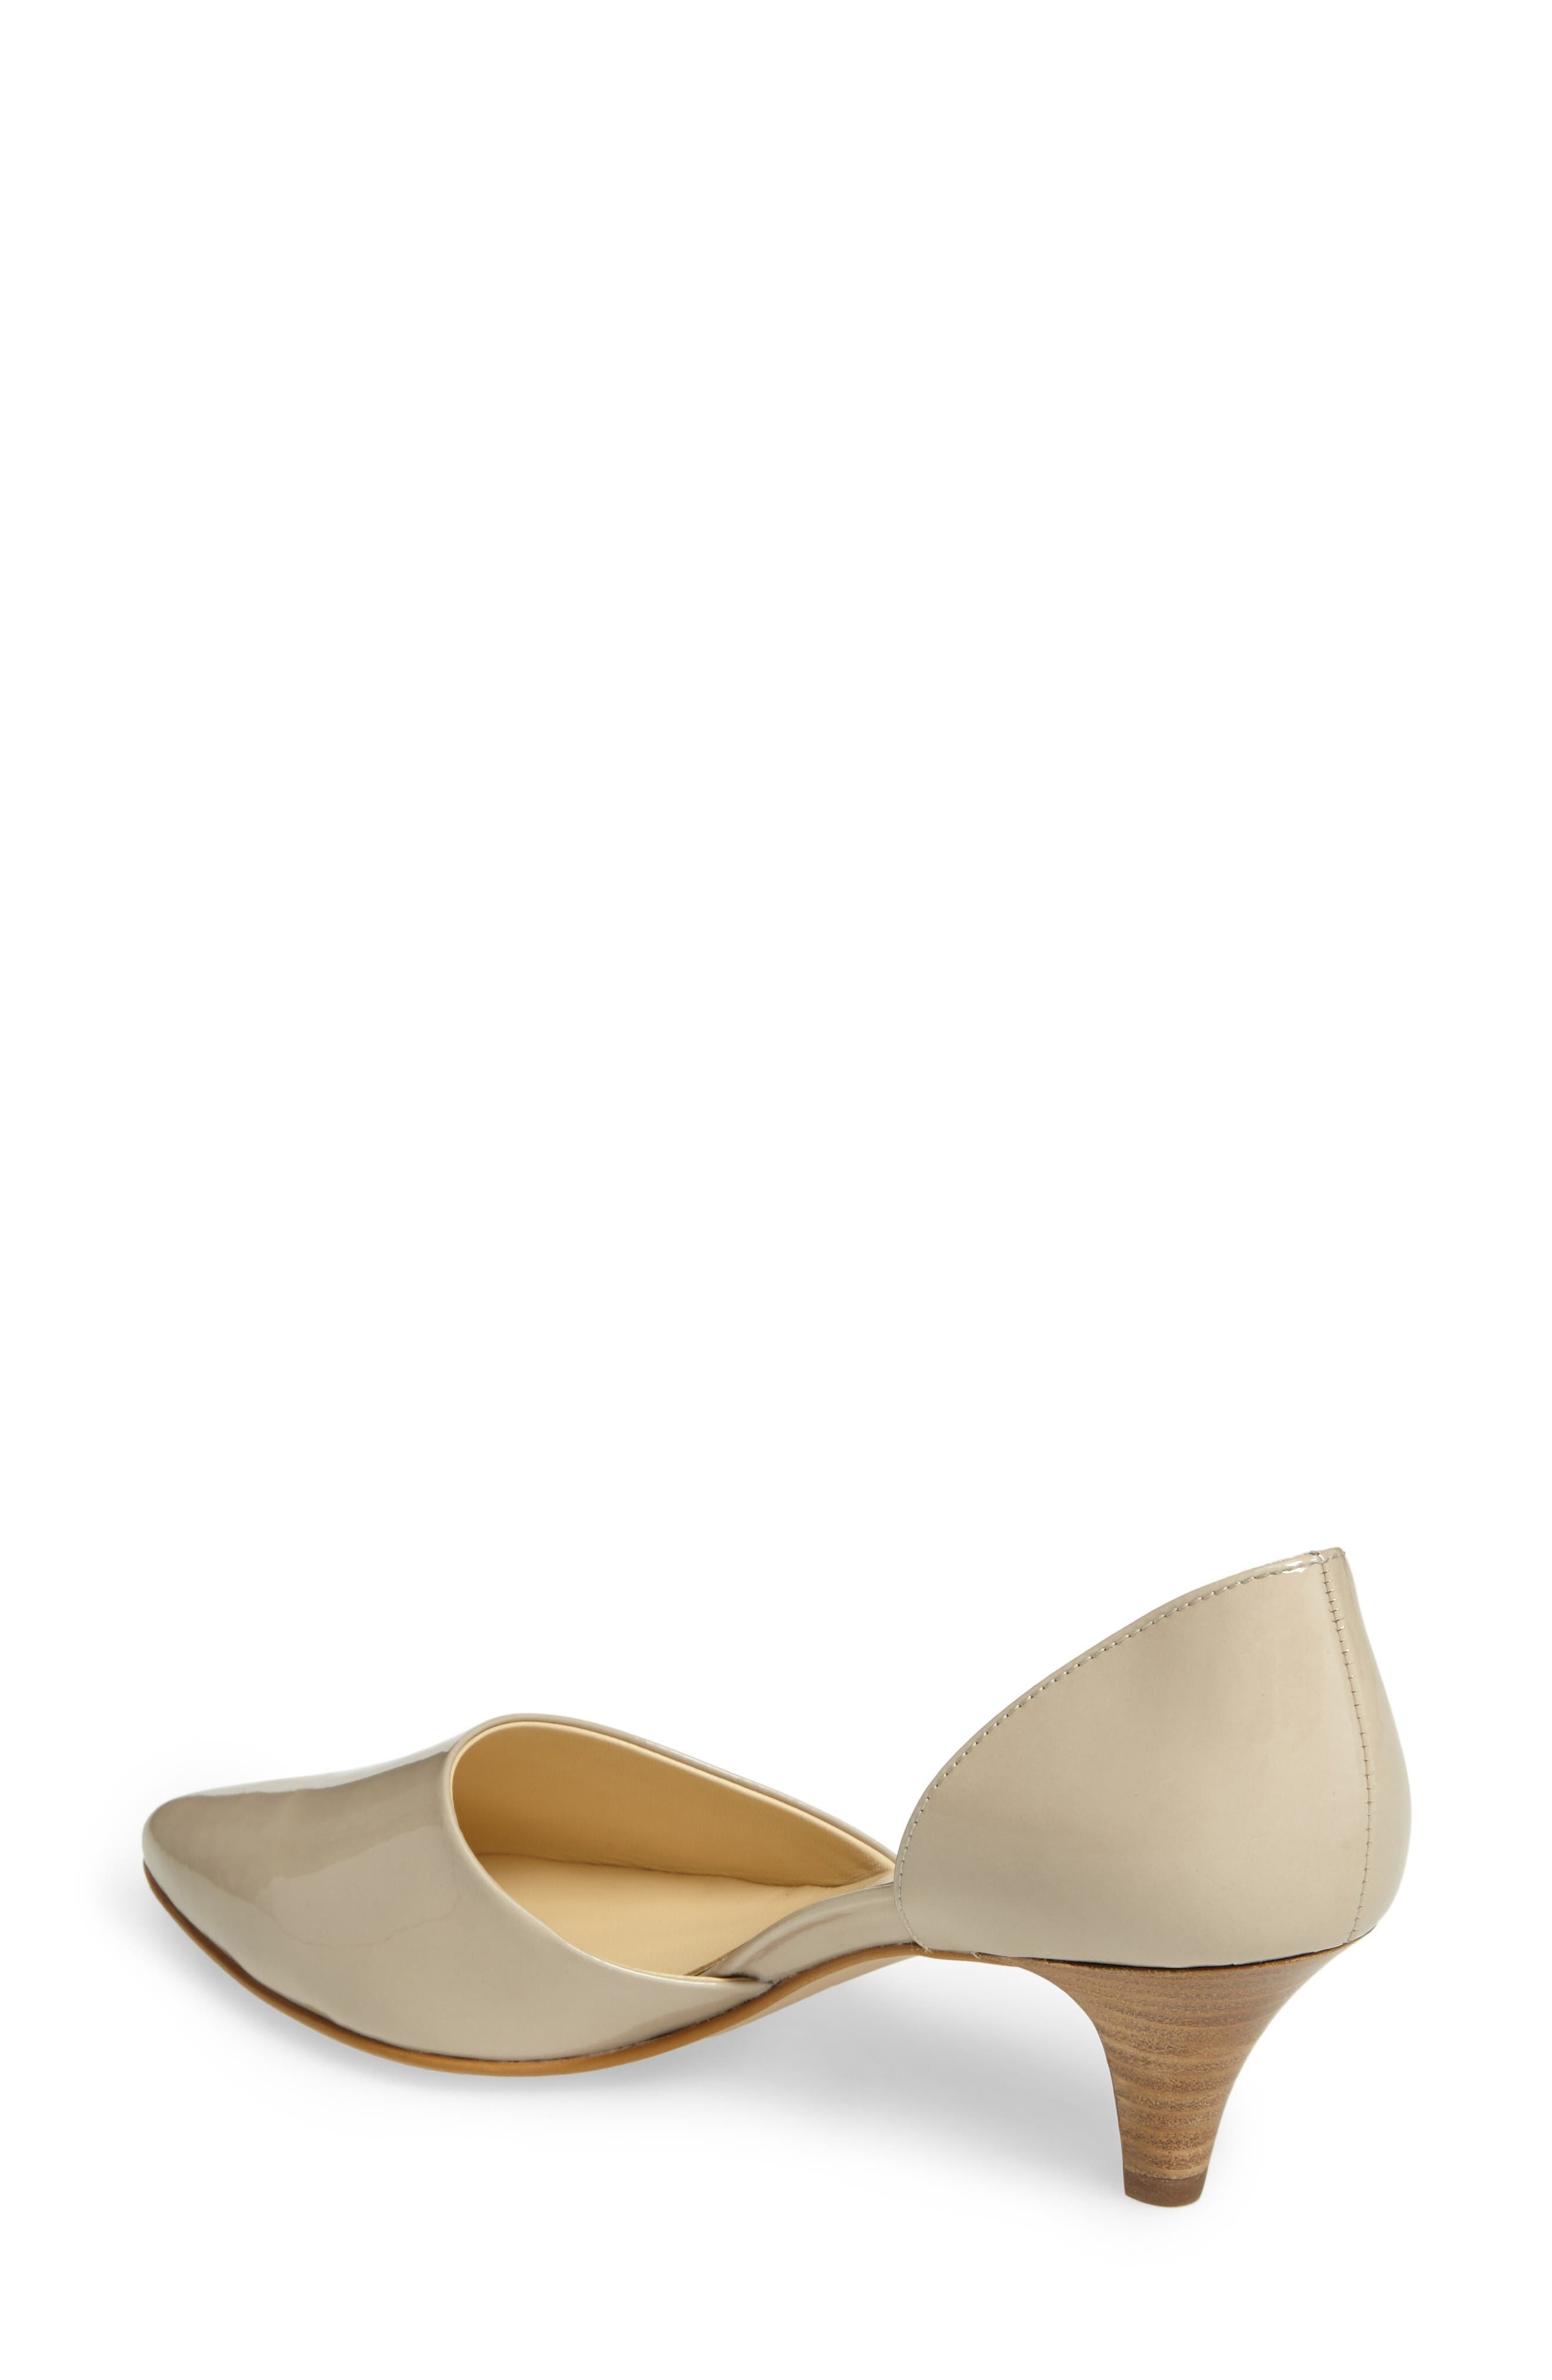 'Julia' d'Orsay Pump,                             Alternate thumbnail 2, color,                             Taupe Patent